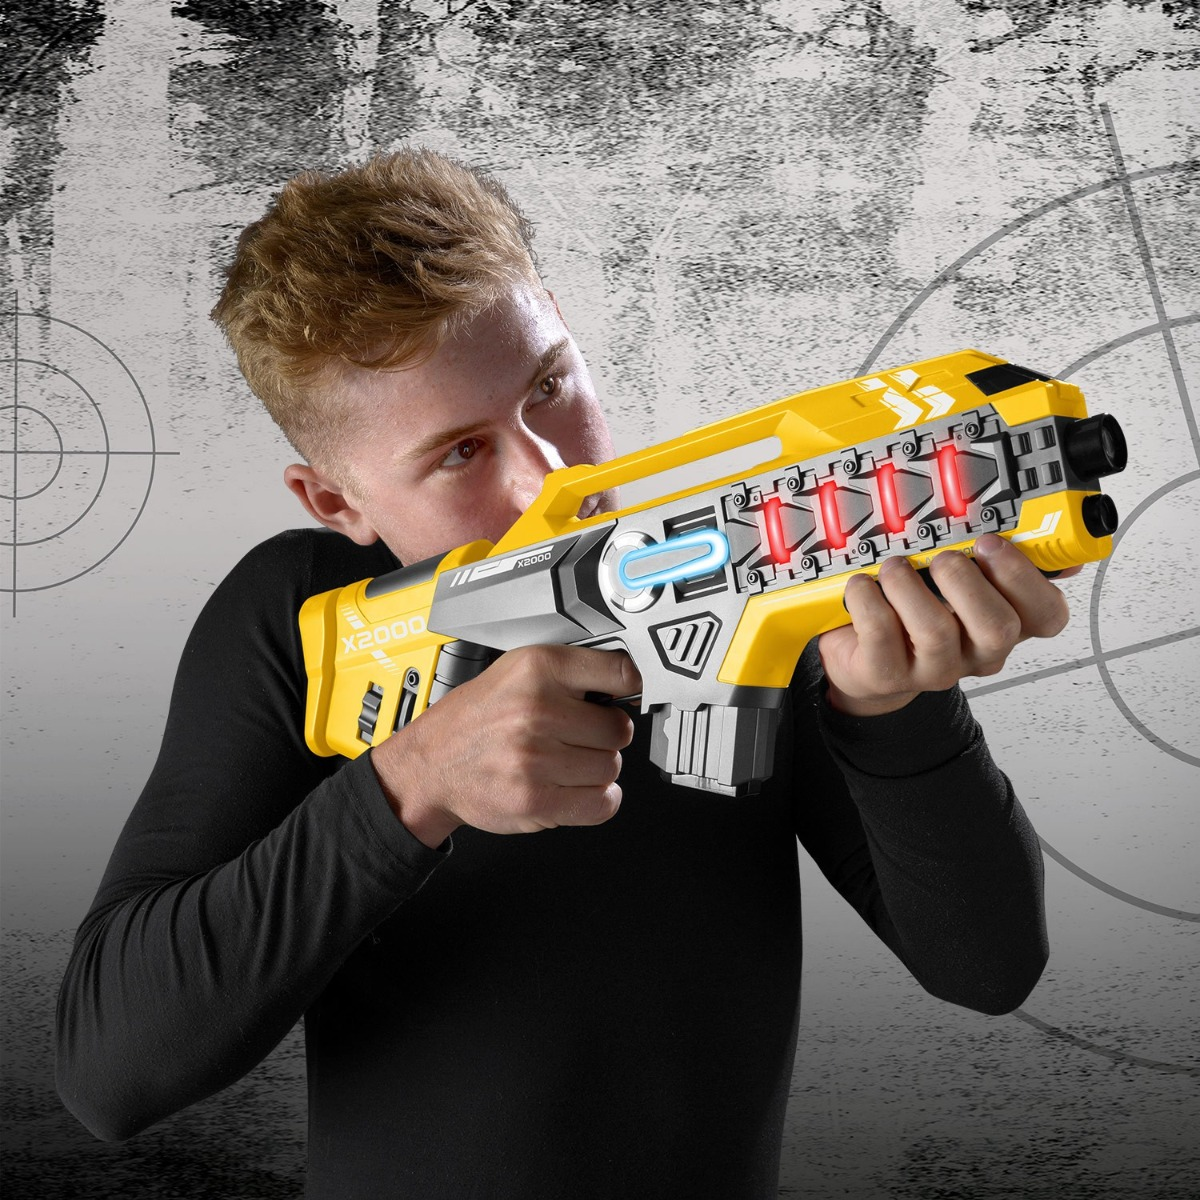 Laser-Tag-Game-Kids-Electronic-2-Blaster-Gun-Battle-Set-60m-Shooting-Range thumbnail 12